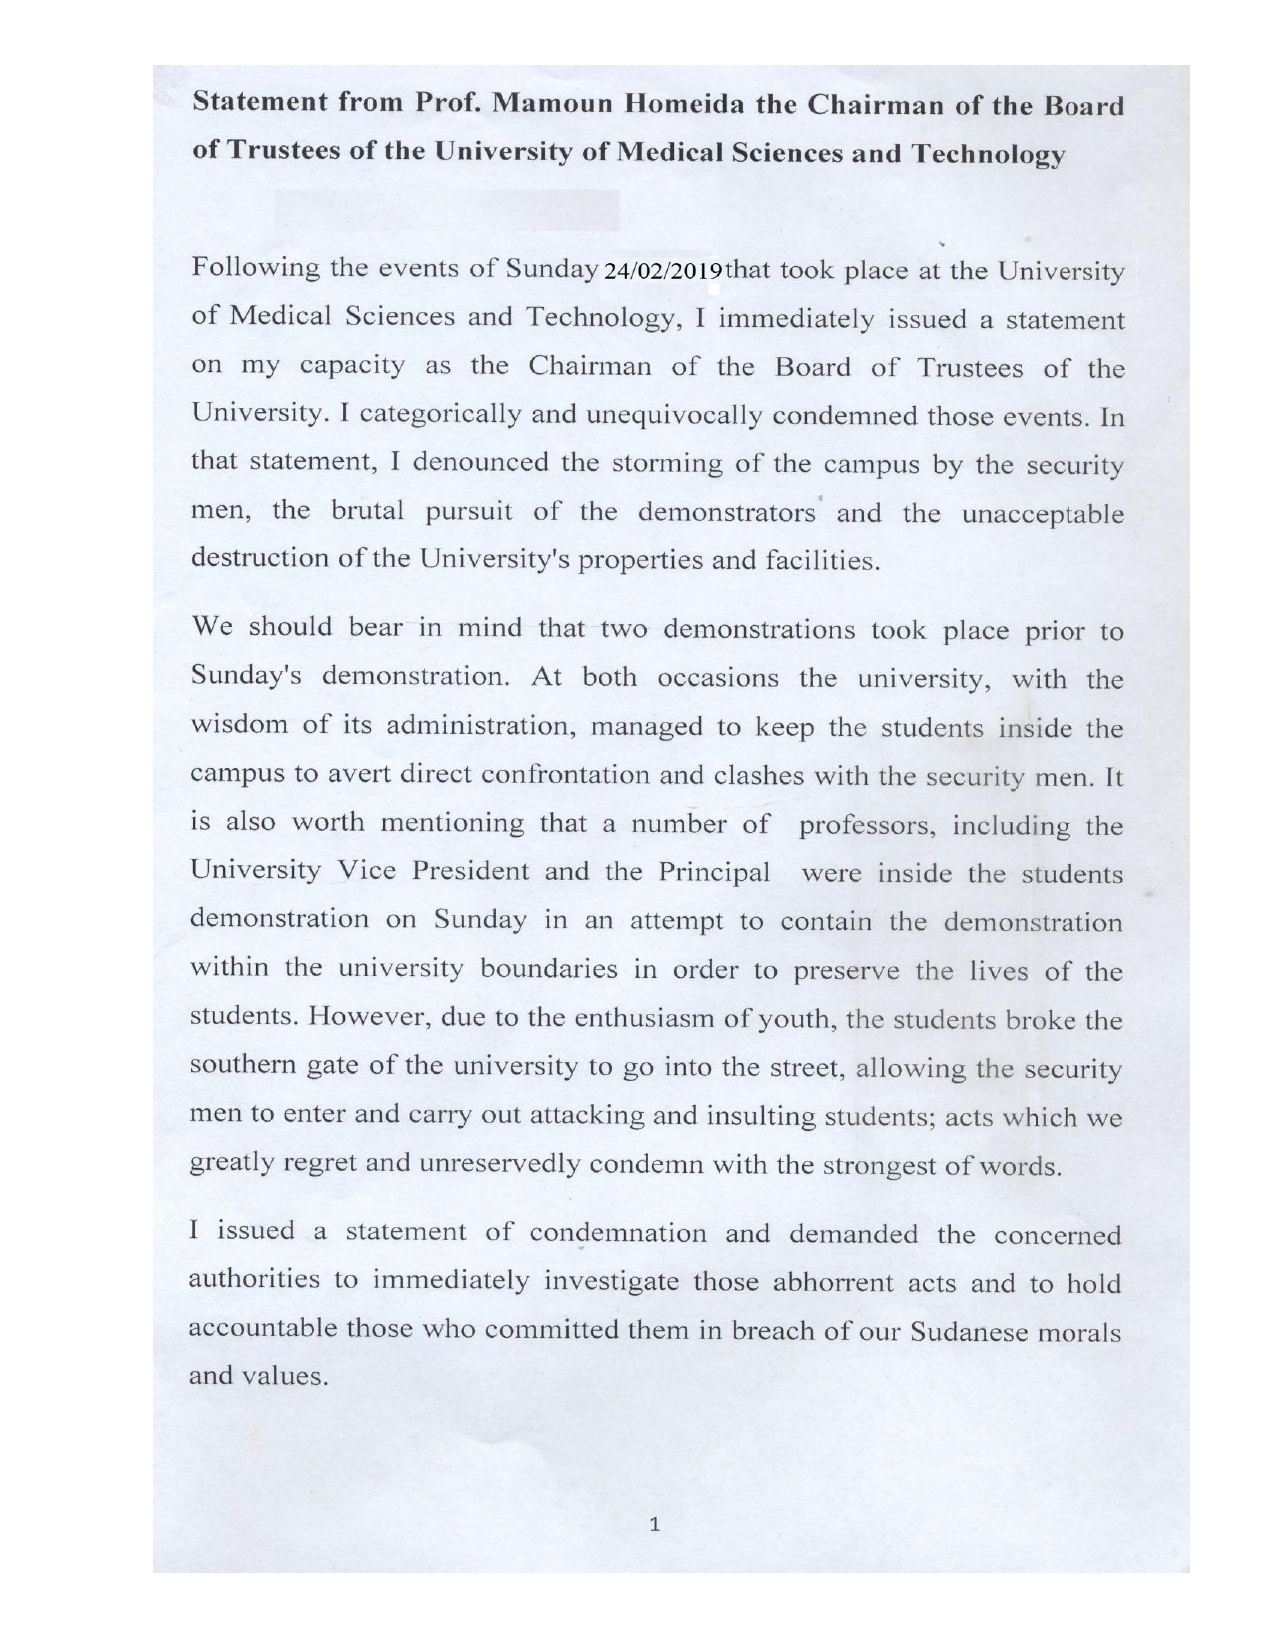 Statement from Prof Homeida about UMST on 24-02-2019